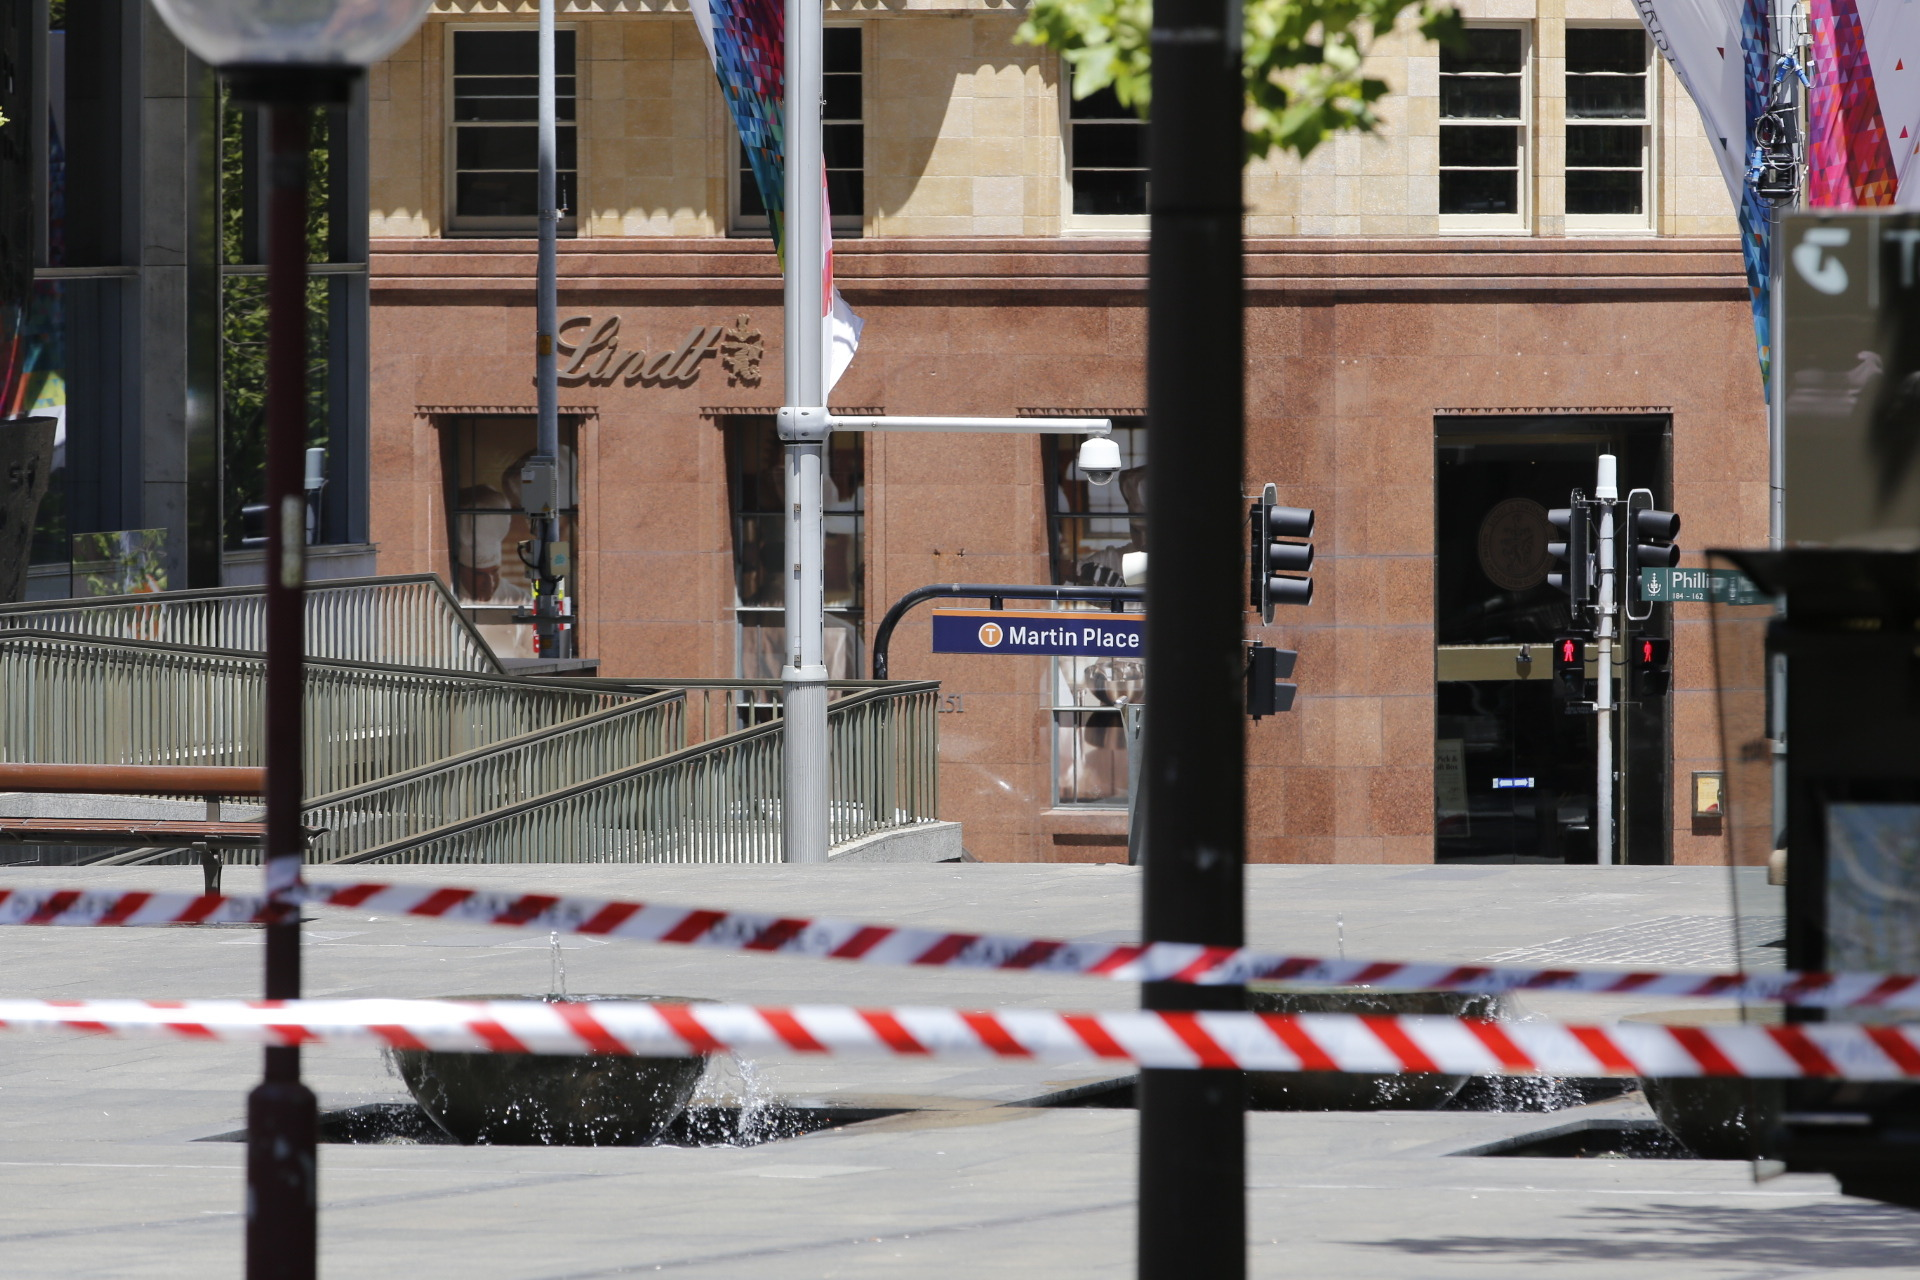 NSW Coroner hands down his report into the Lindt cafe siege